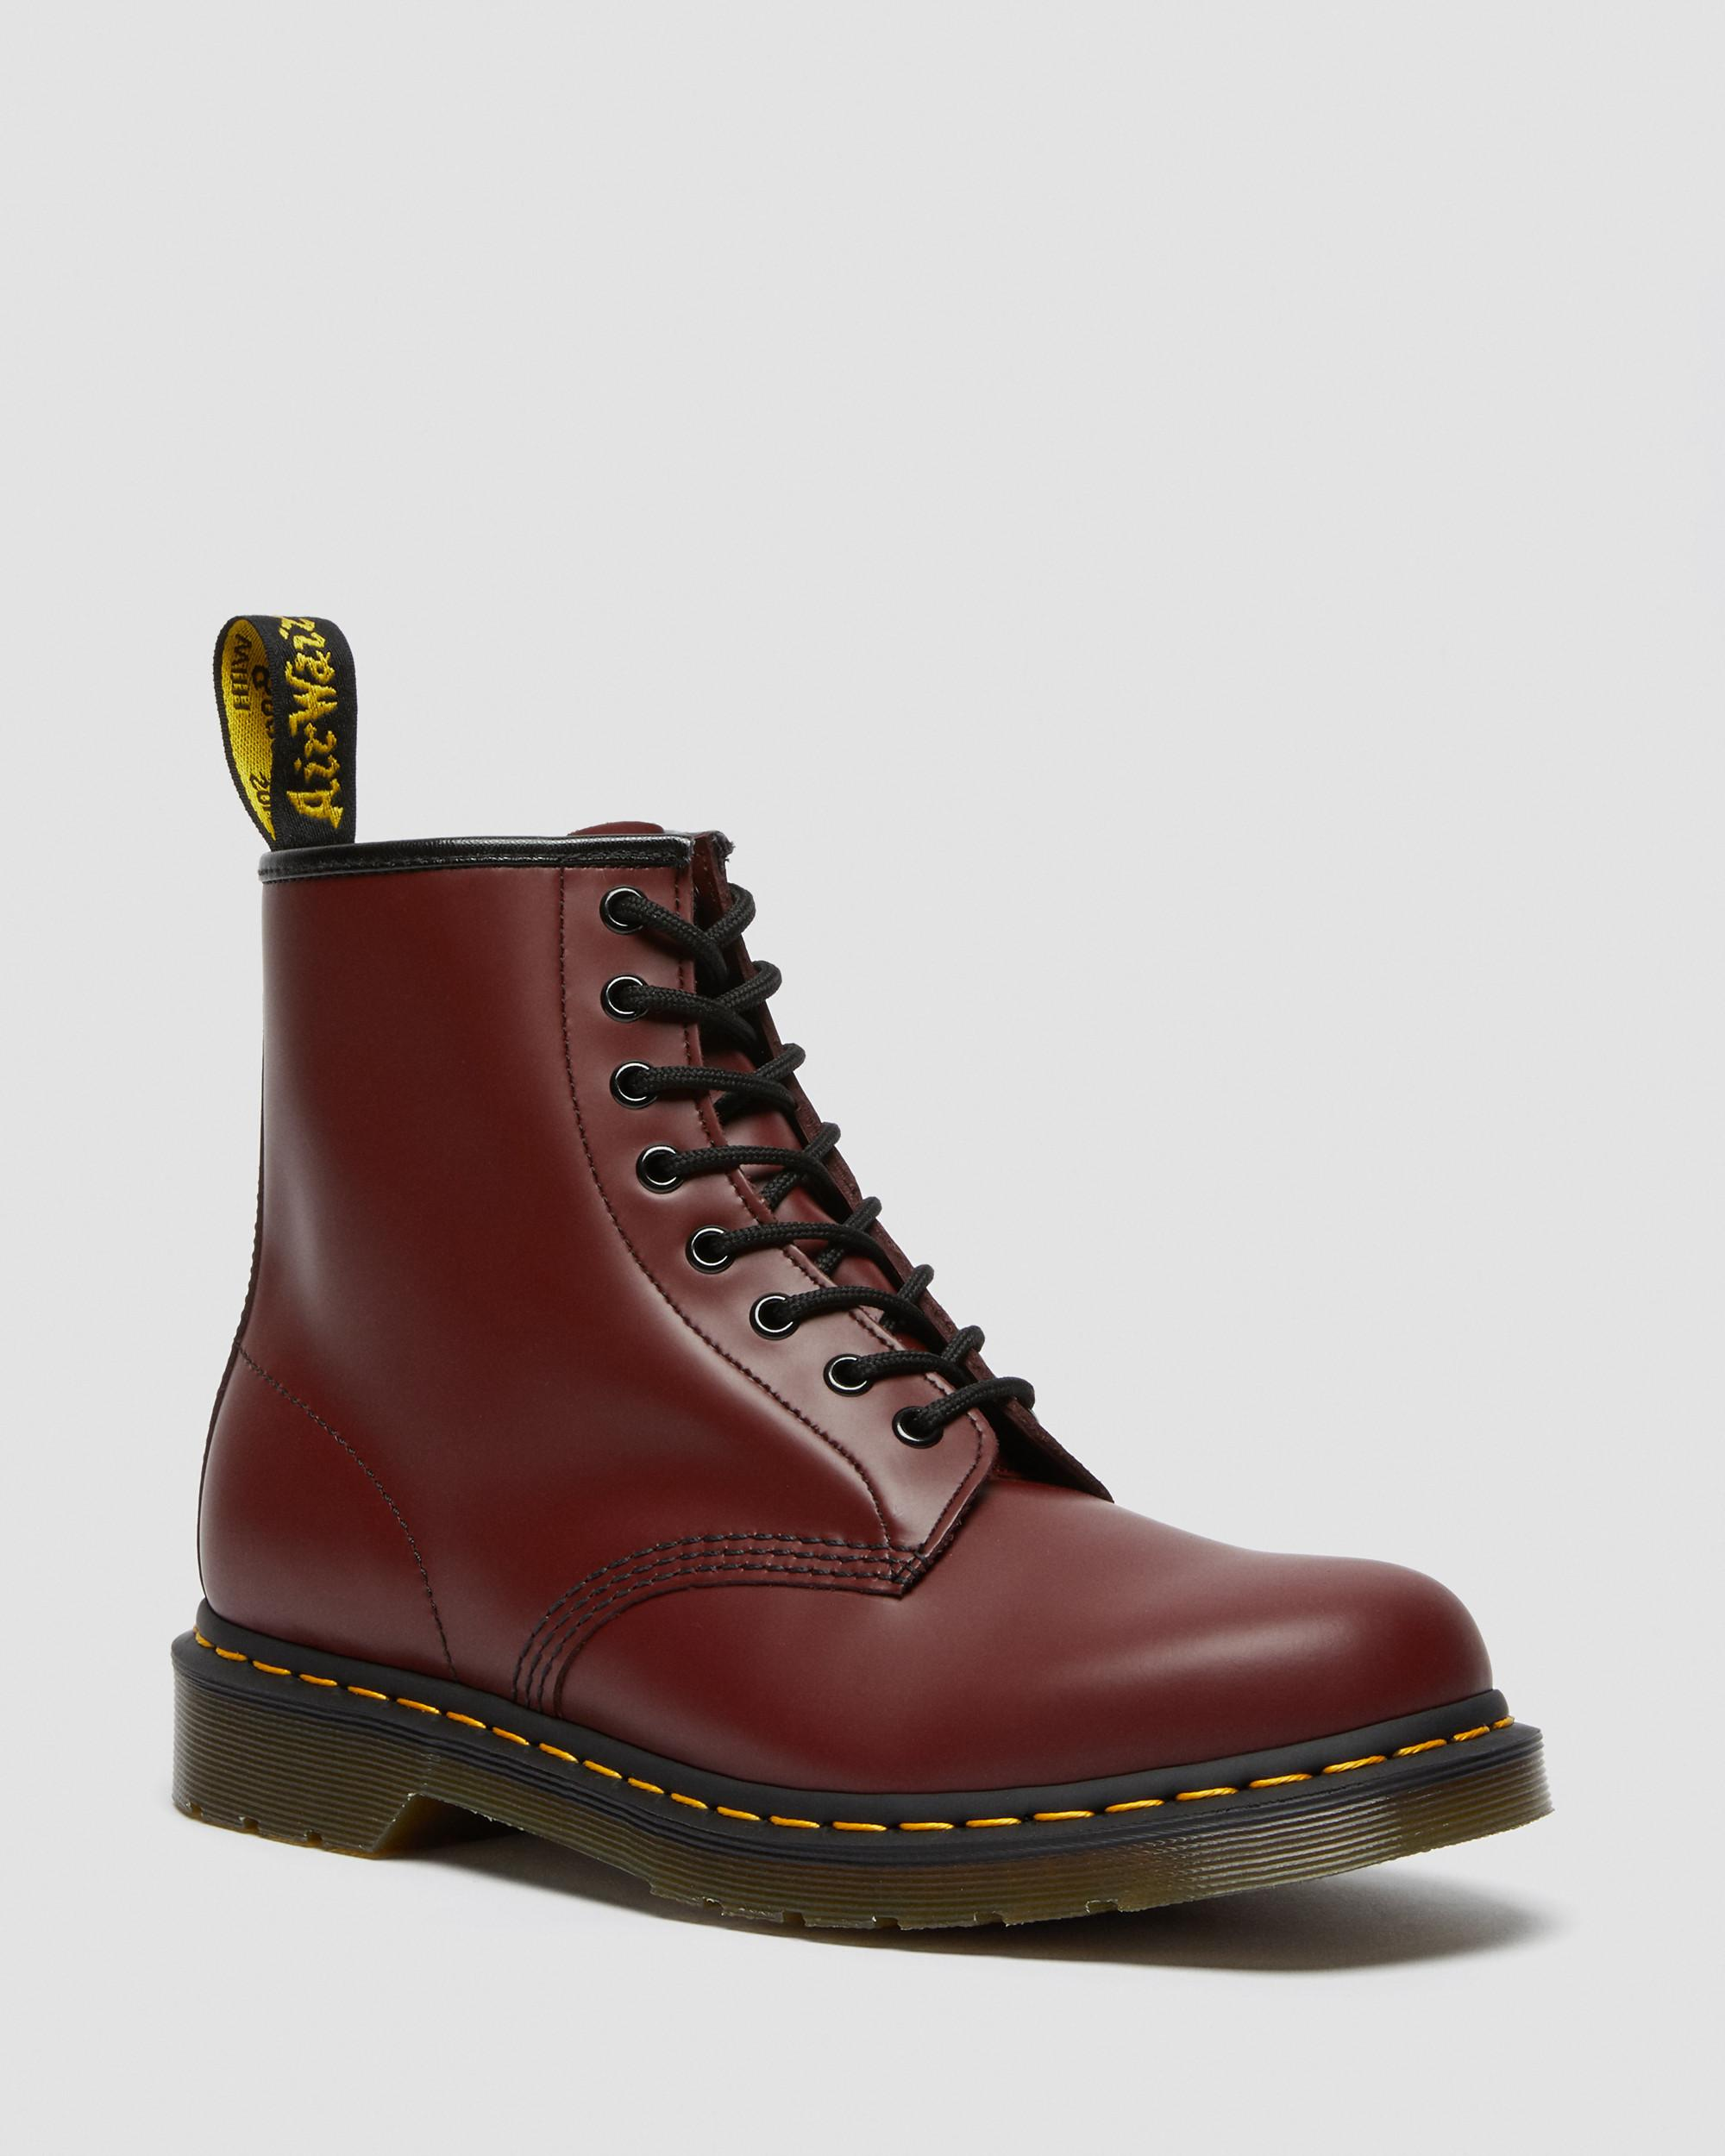 Dr Martens Boots 1460.SMOOTH best prices